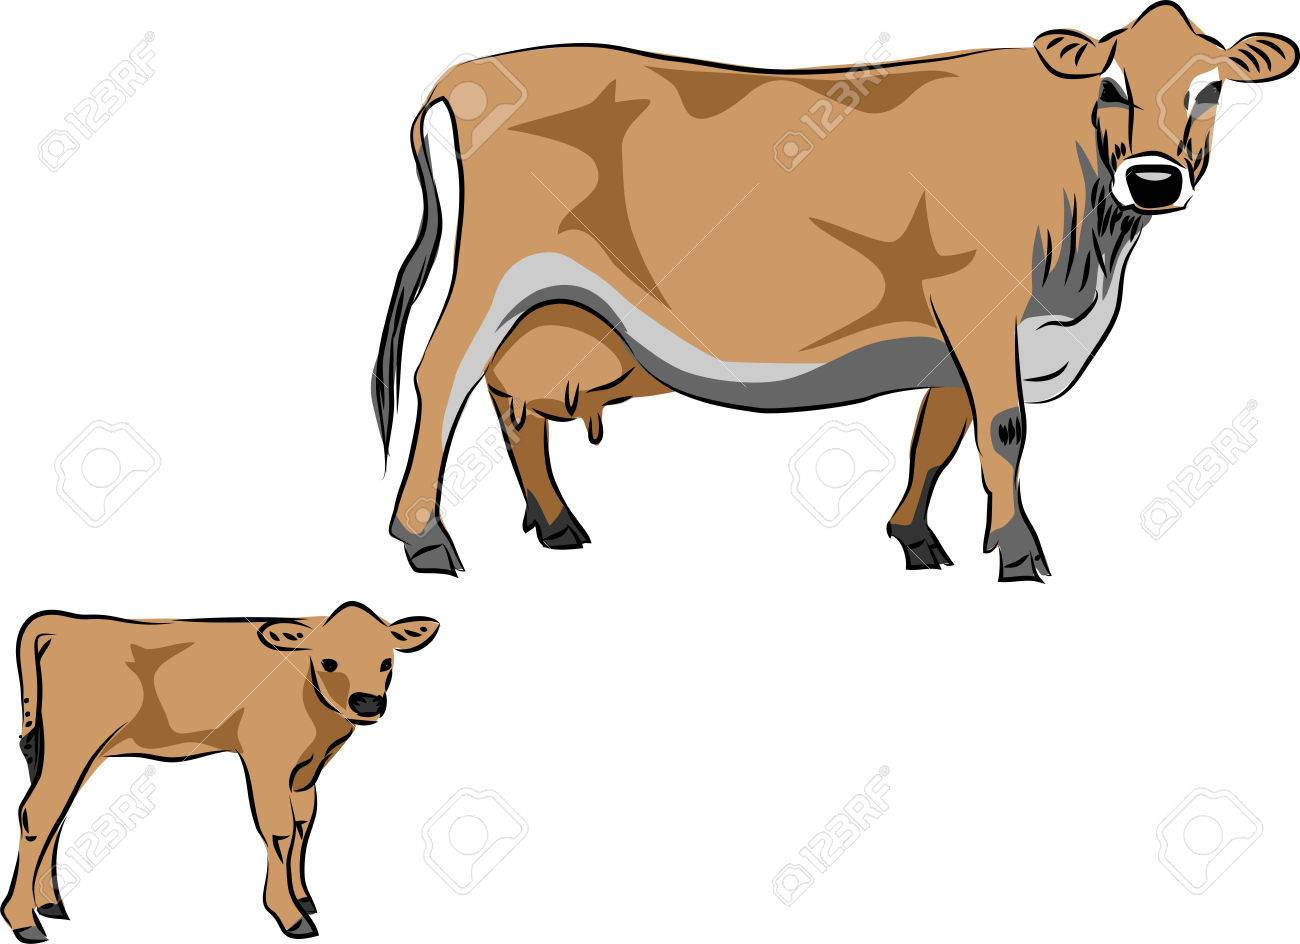 Jersey Cow With Calf Vector Illustration Royalty Free Cliparts ... for Cow And Calf Clipart  51ane